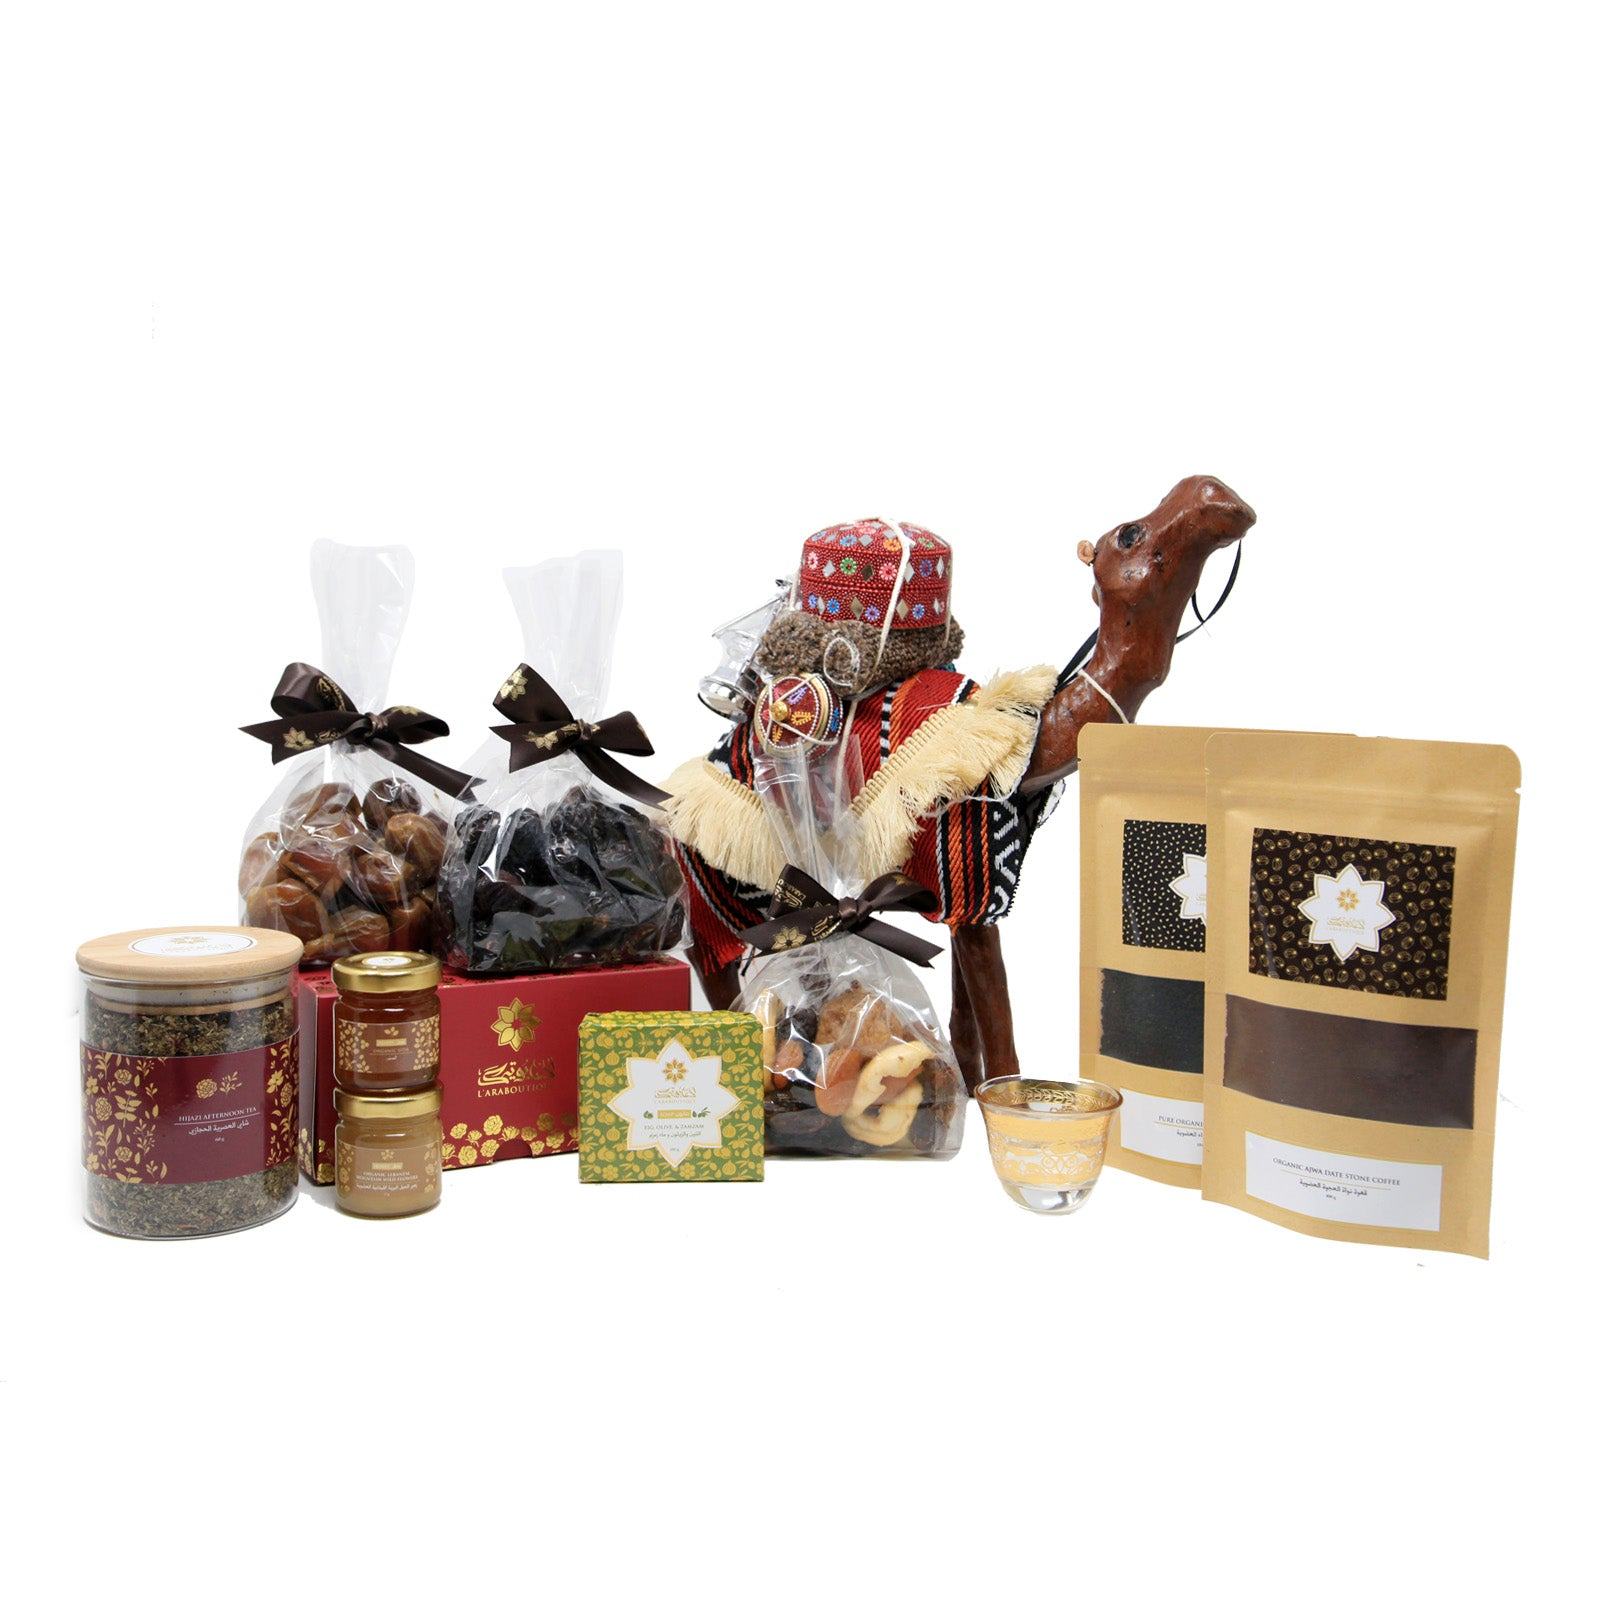 The Arabian Ramadan Hamper